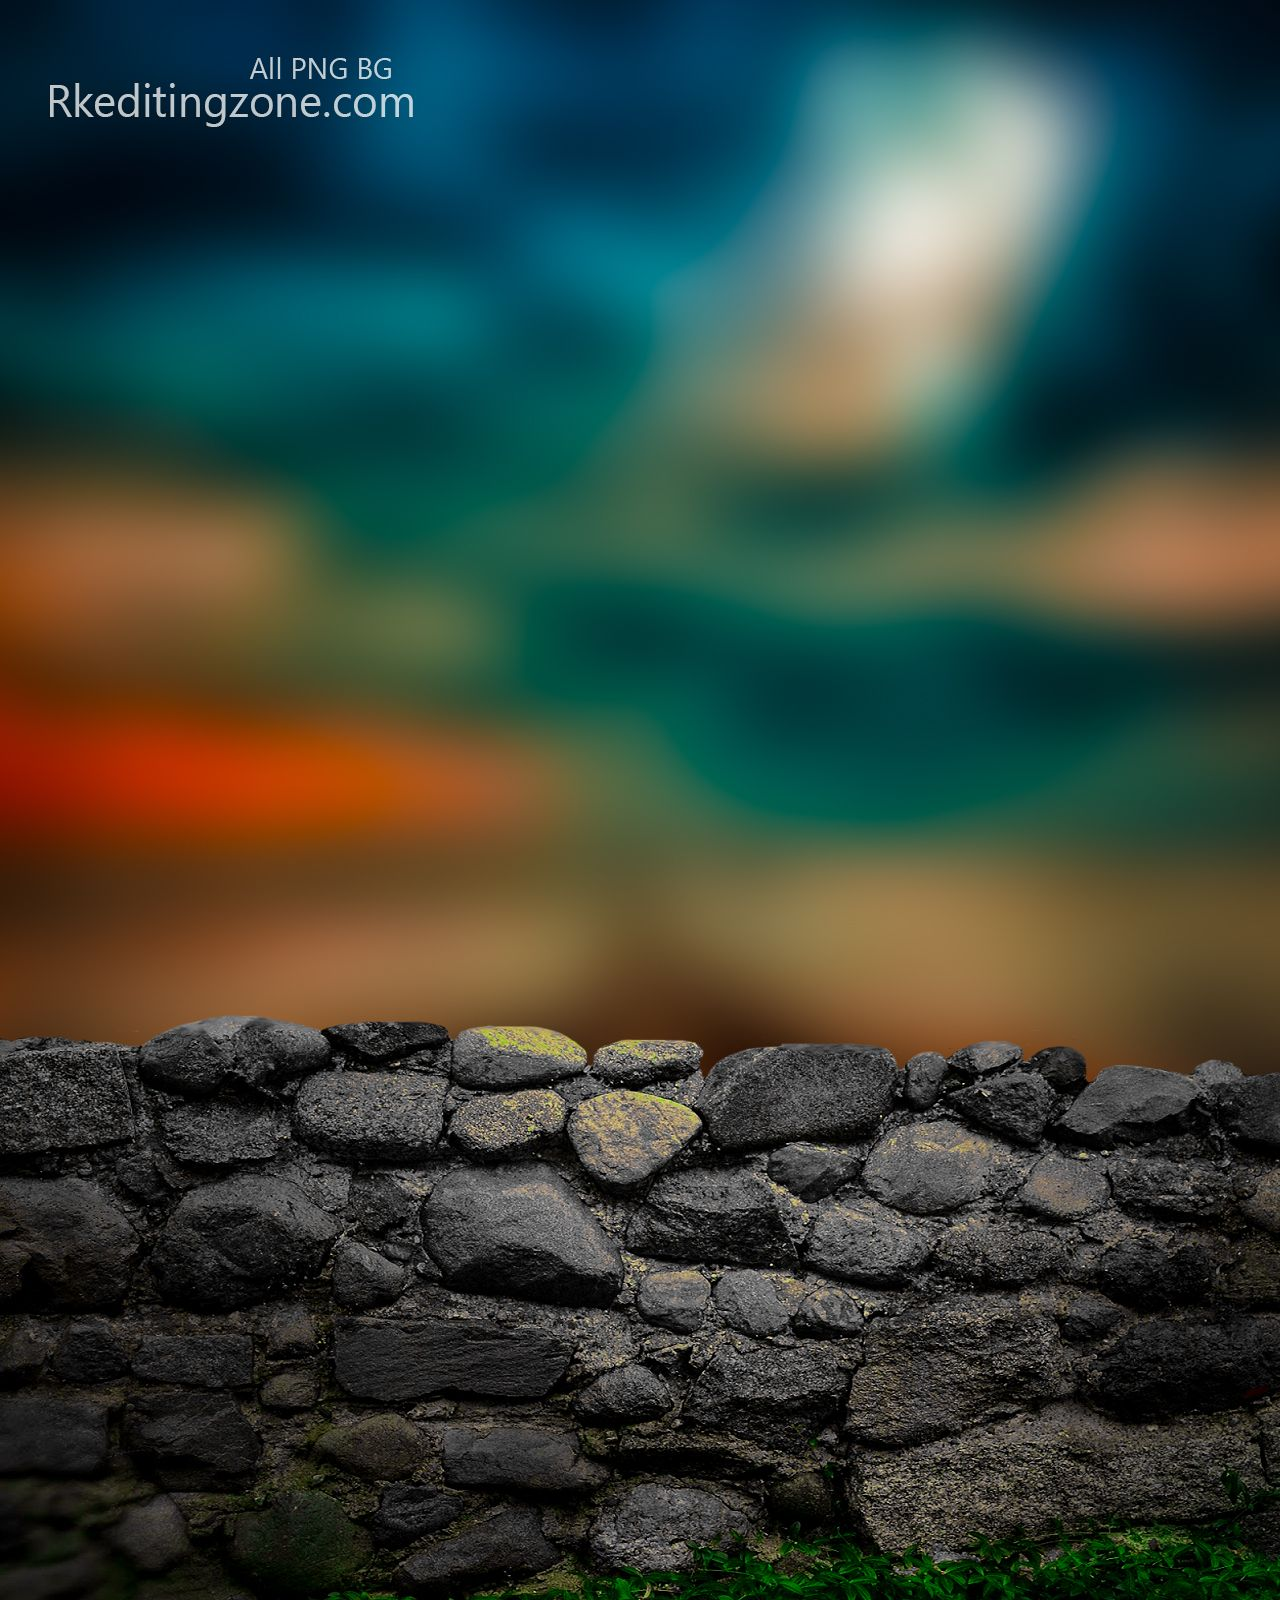 New Hd Backgrounds Cb Backgrounds Background images for editing 1280x1600